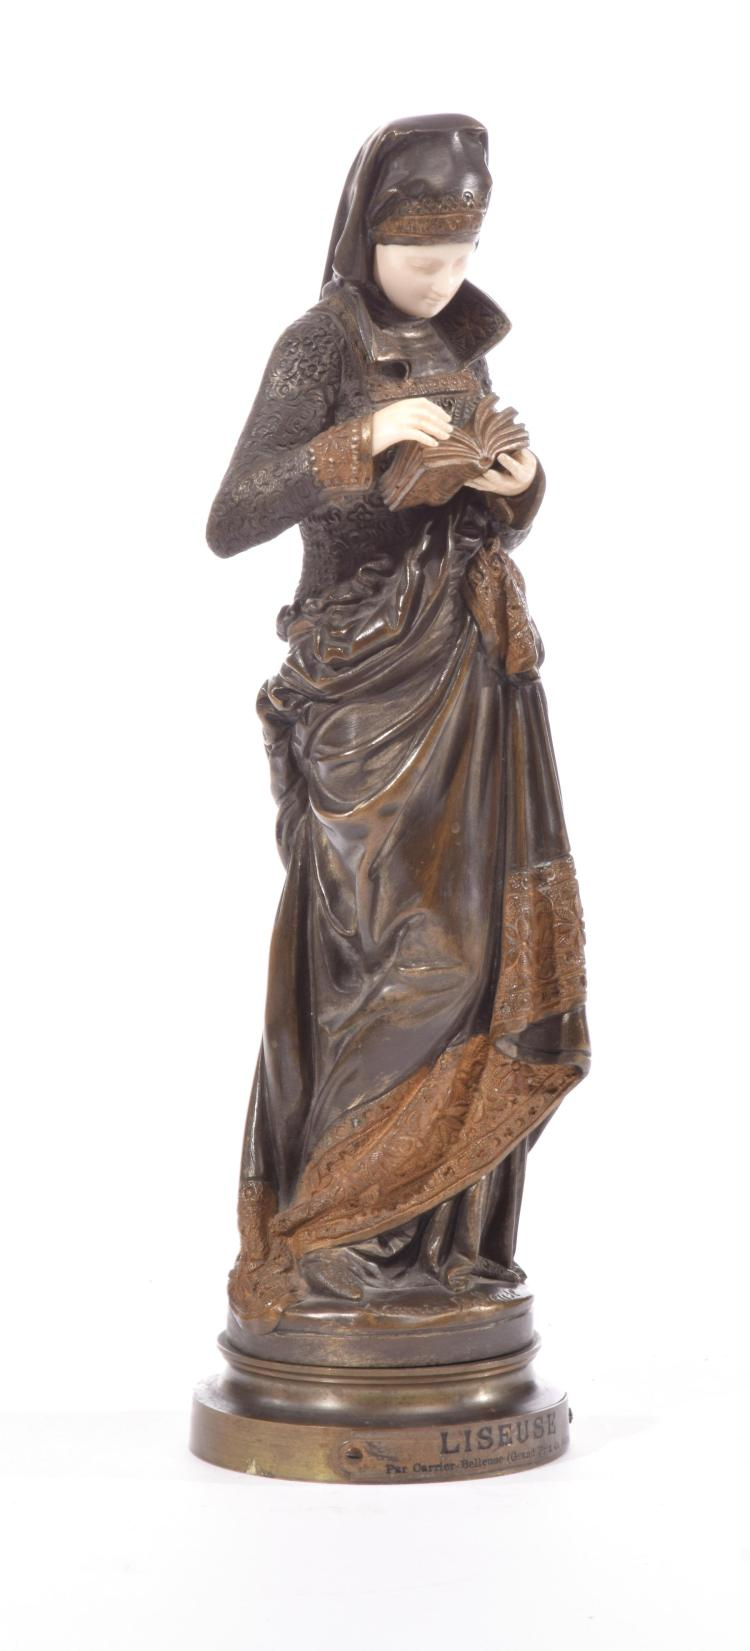 BRONZE FIGURE BY A. CARRIER-BELLEUSE (FRENCH, 1824-1887).